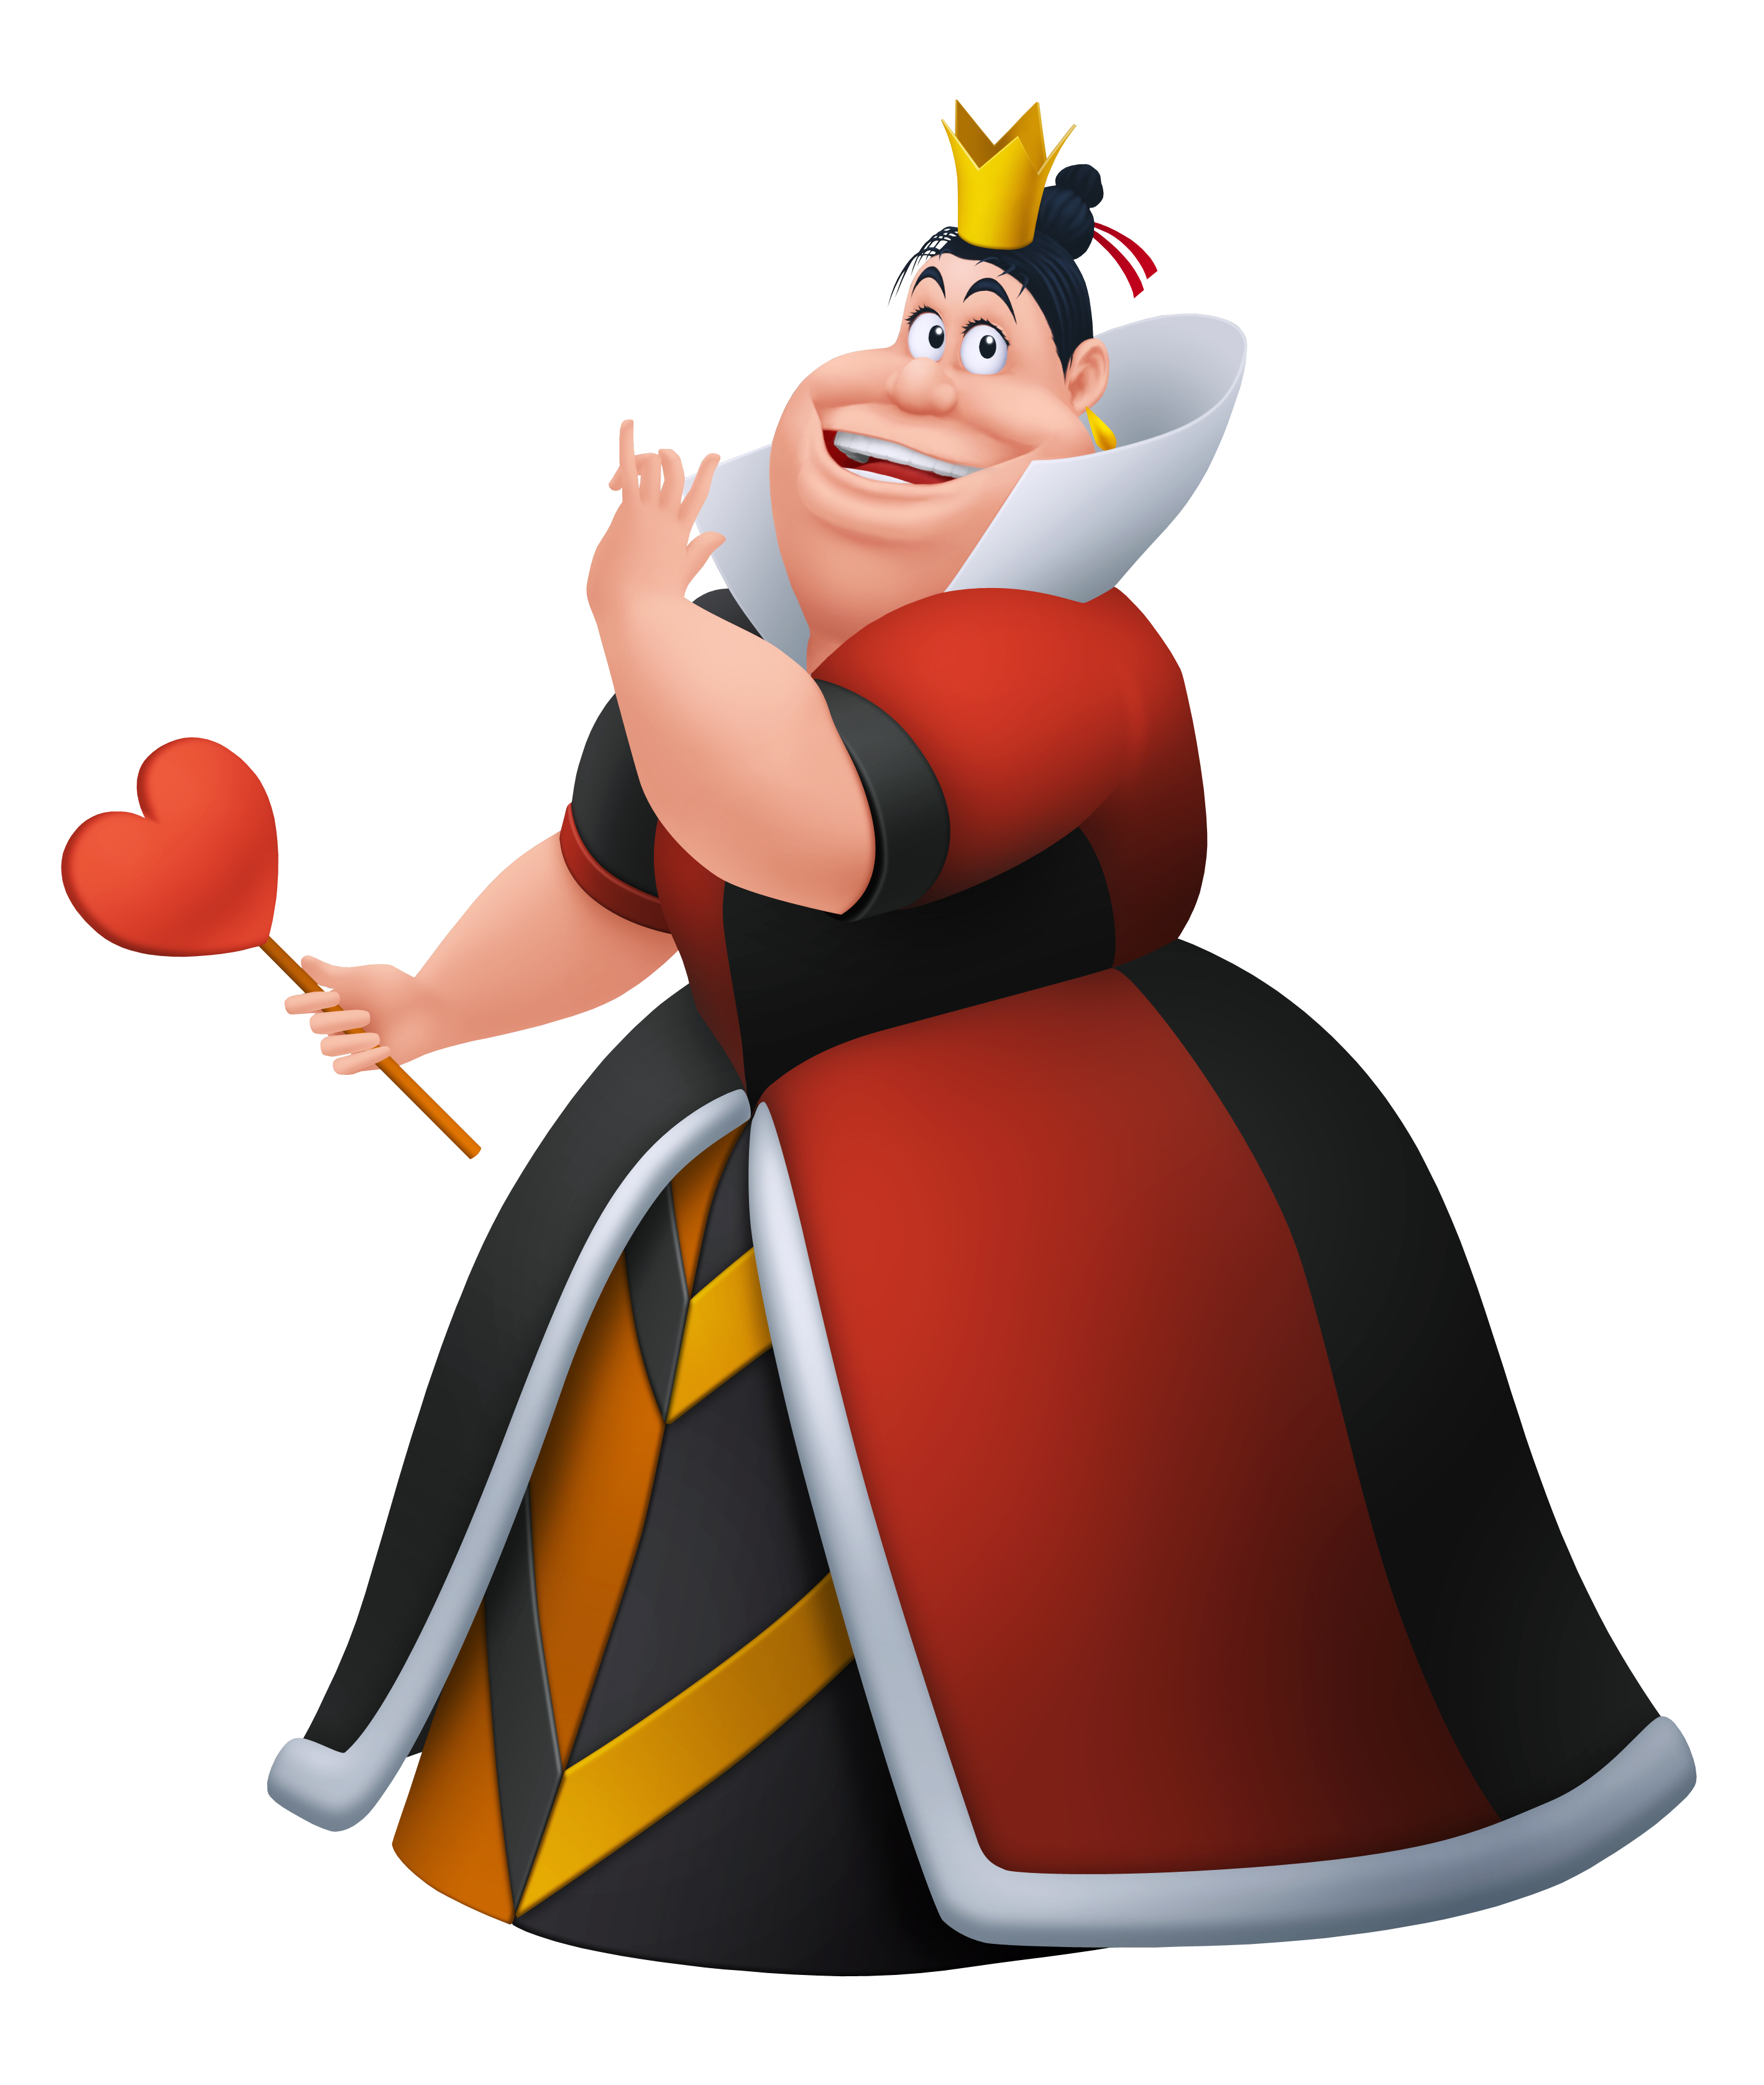 Kingdom insider. Queen of hearts png